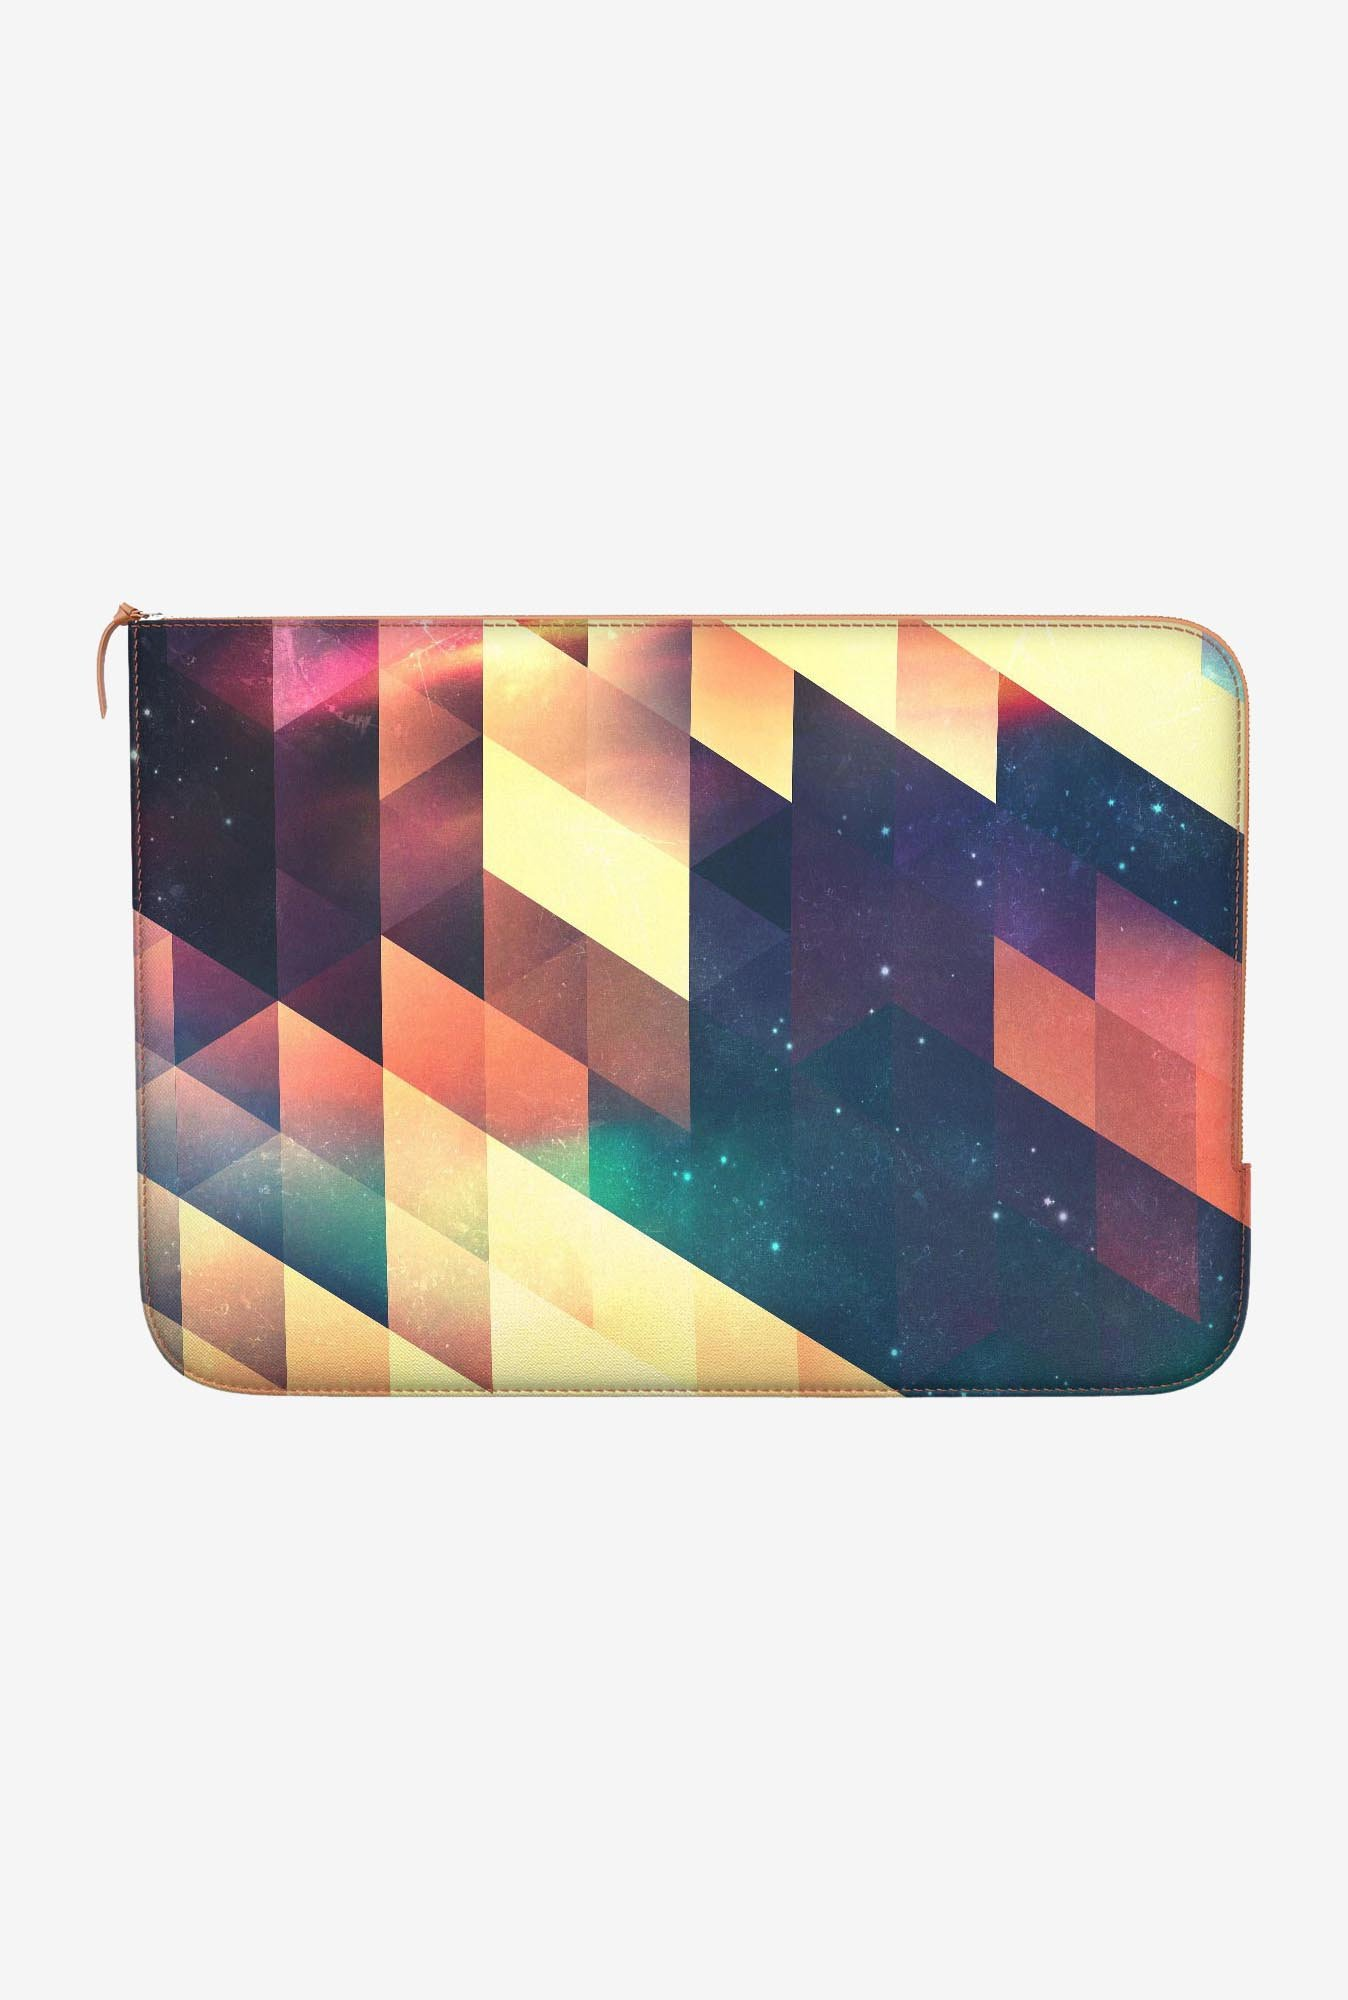 DailyObjects thyss lyyts MacBook Air 11 Zippered Sleeve